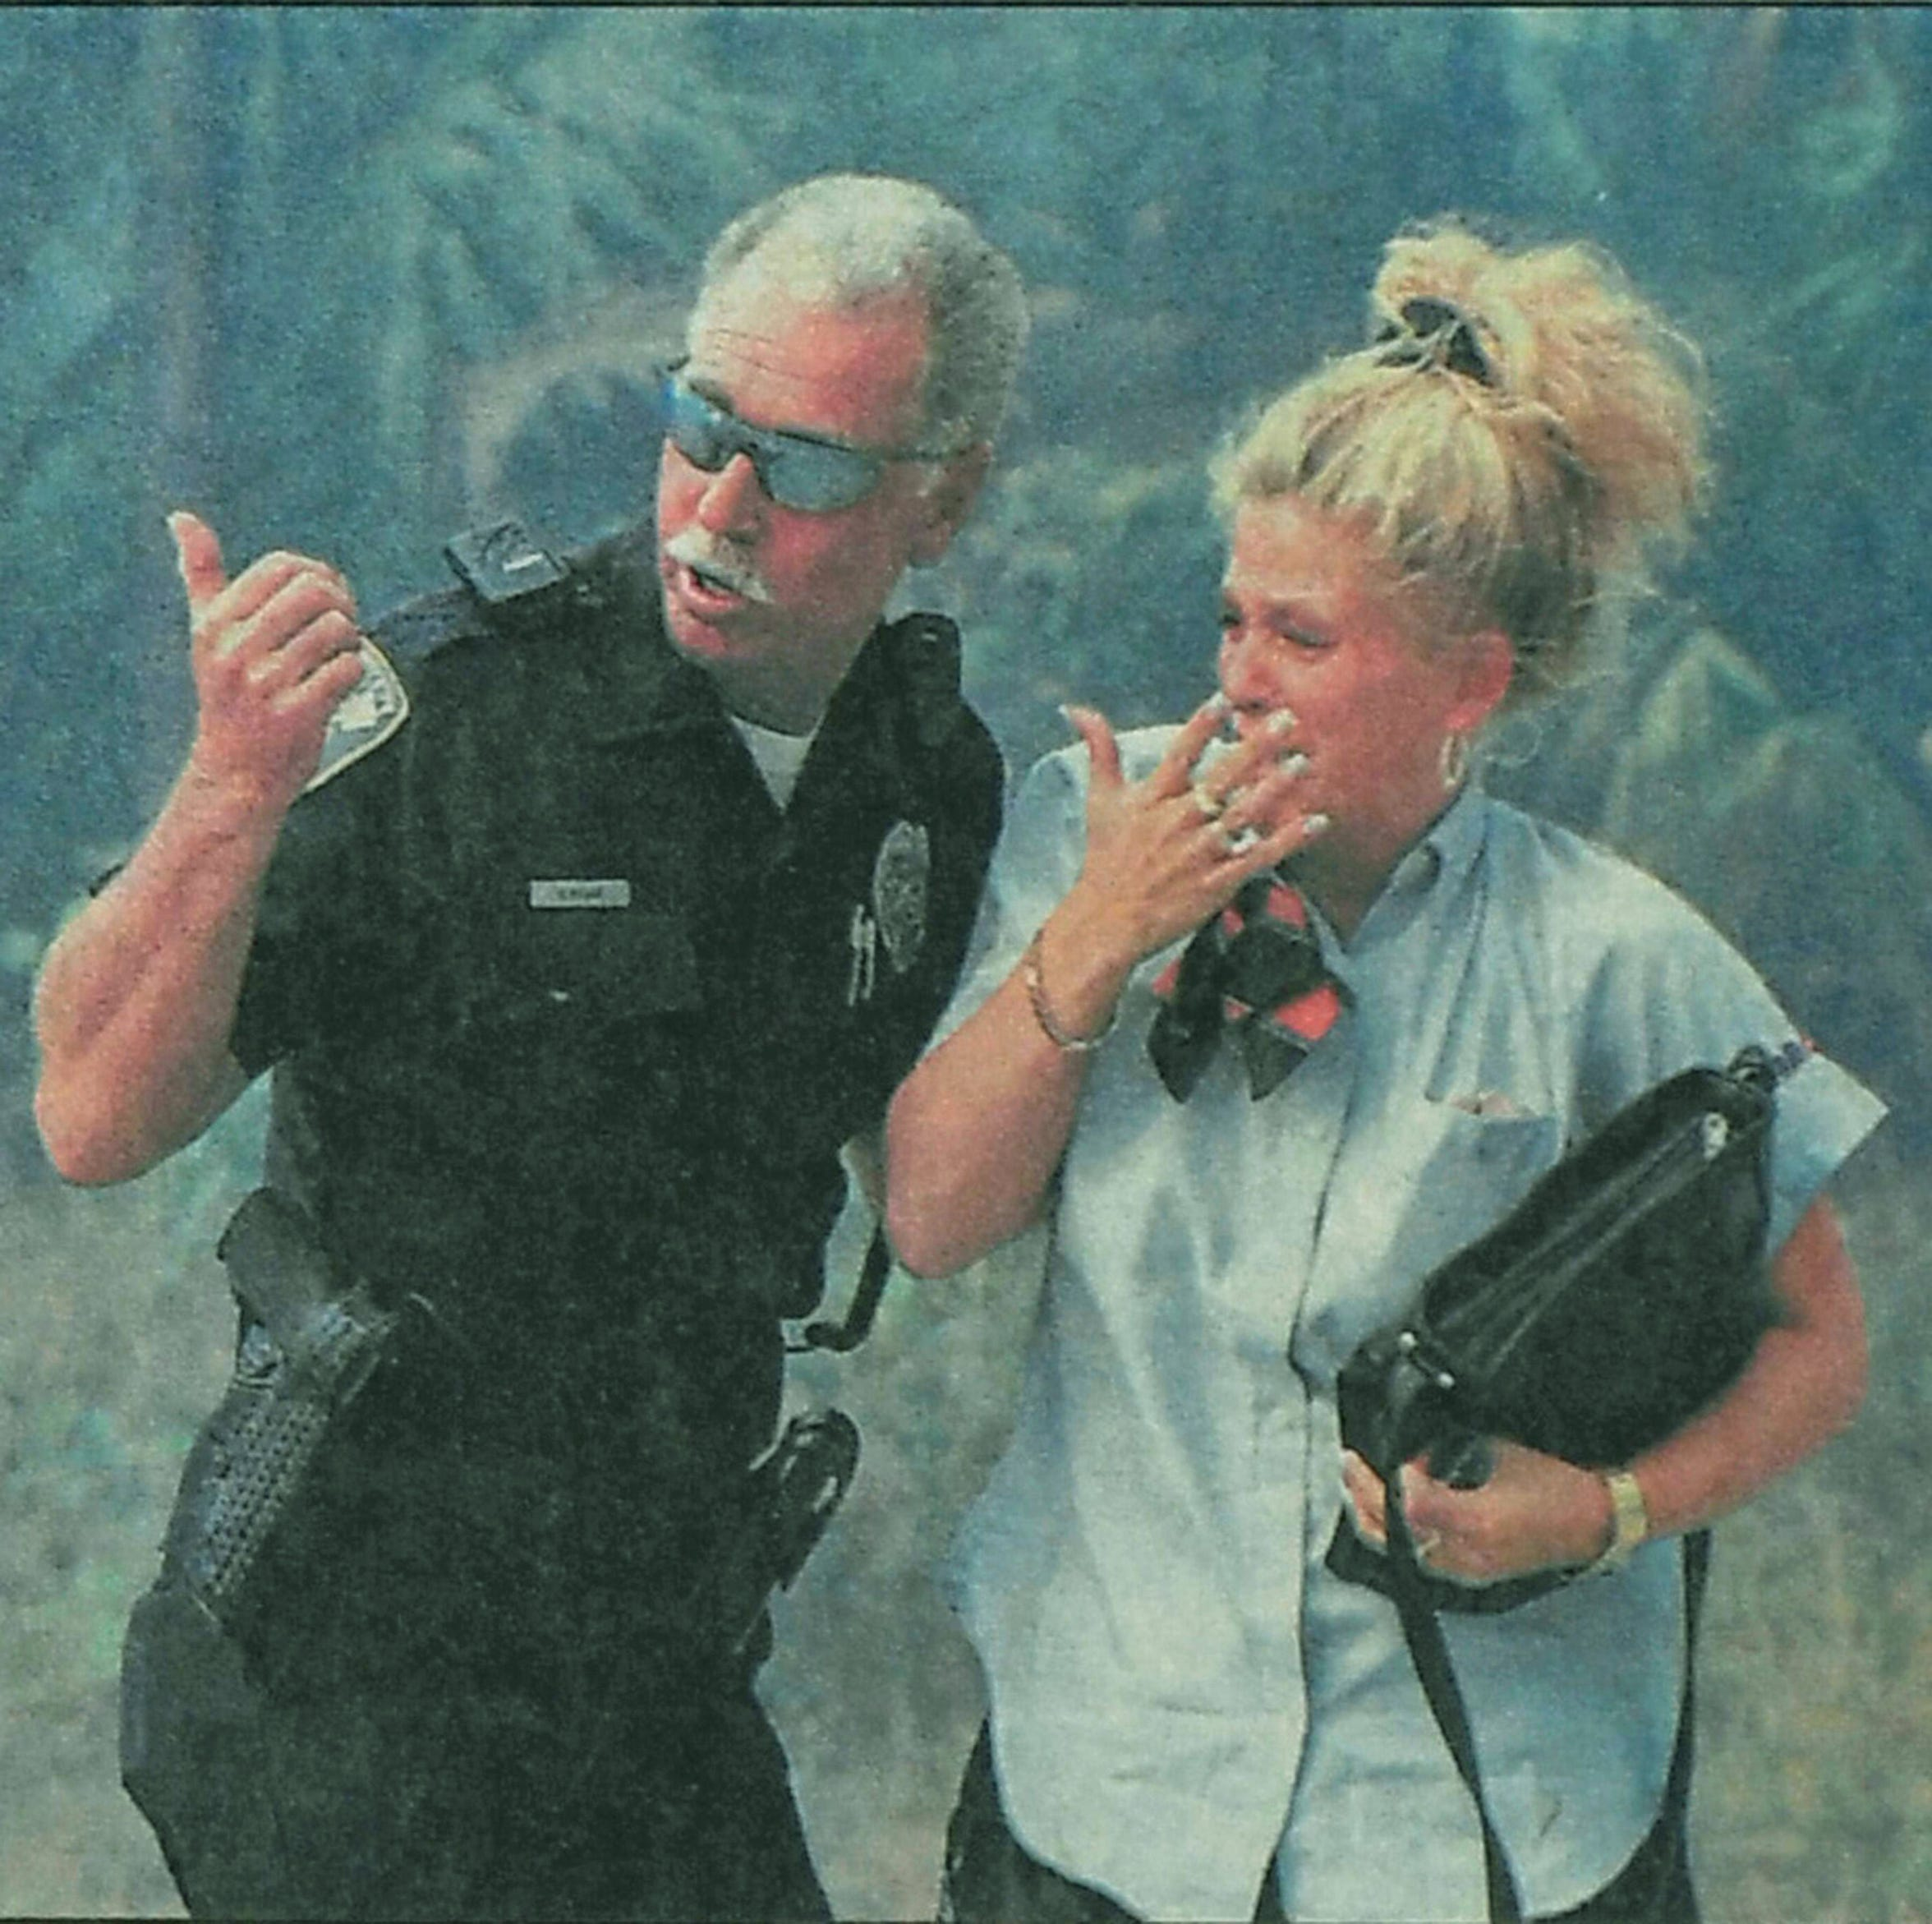 Port St. Lucie Police Officer Brian Major offers comfort to a resident after her neighborhood near Southwest Deckard Street and Southwest Abingdon Avenue was evacuated on April 15, 1999, in Port St. Lucie. Dozens of homes were destroyed in the area that day.